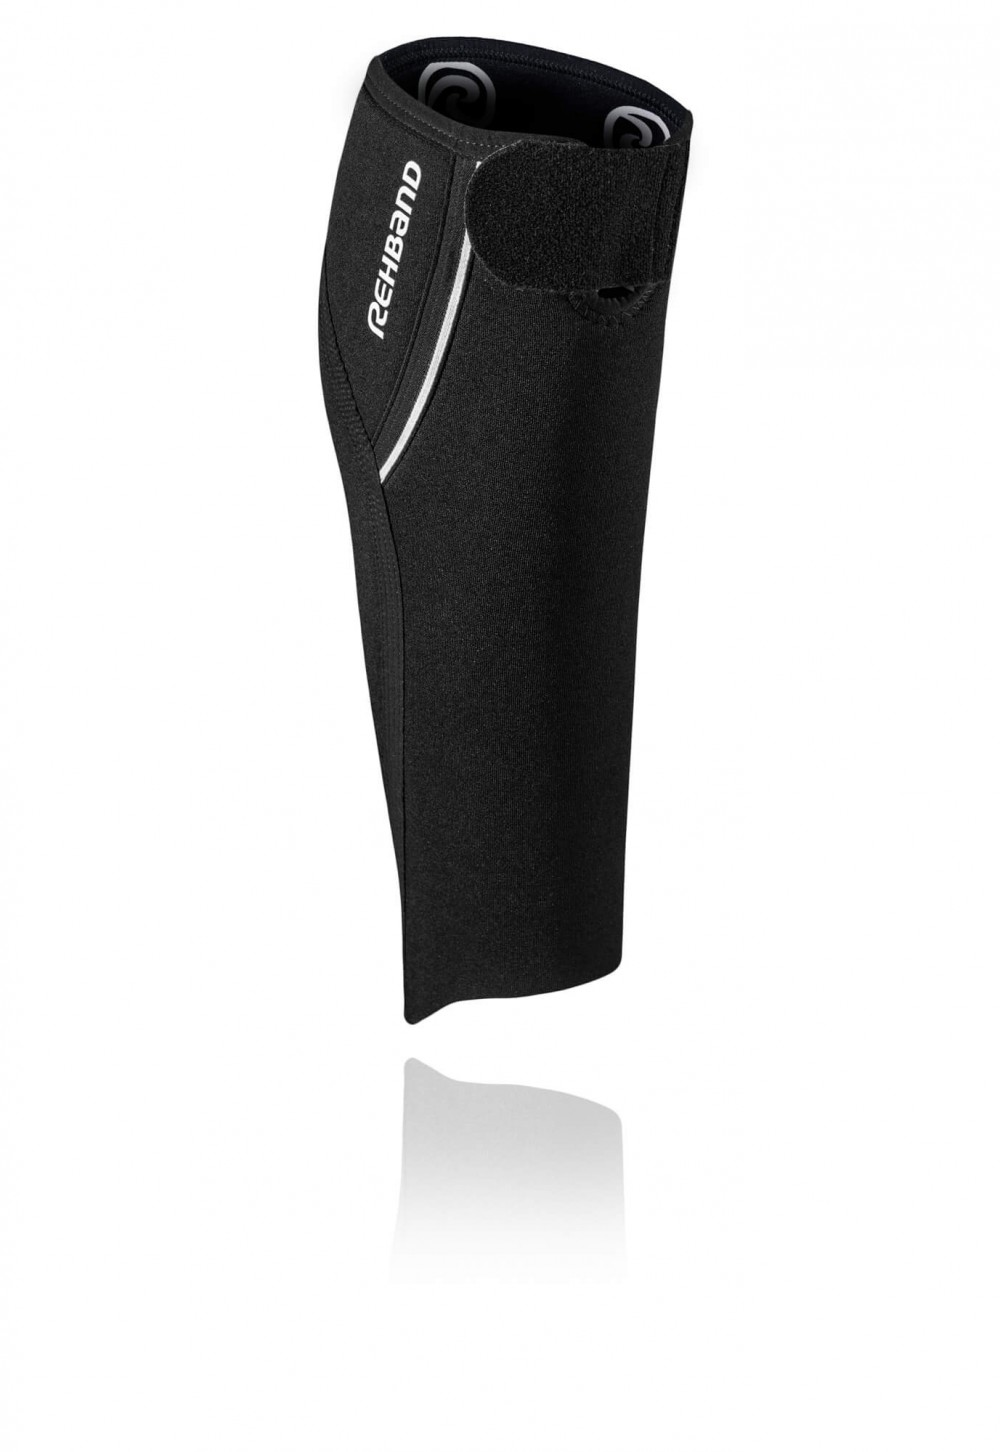 QD Shin & Calf Sleeve 5mm Black S